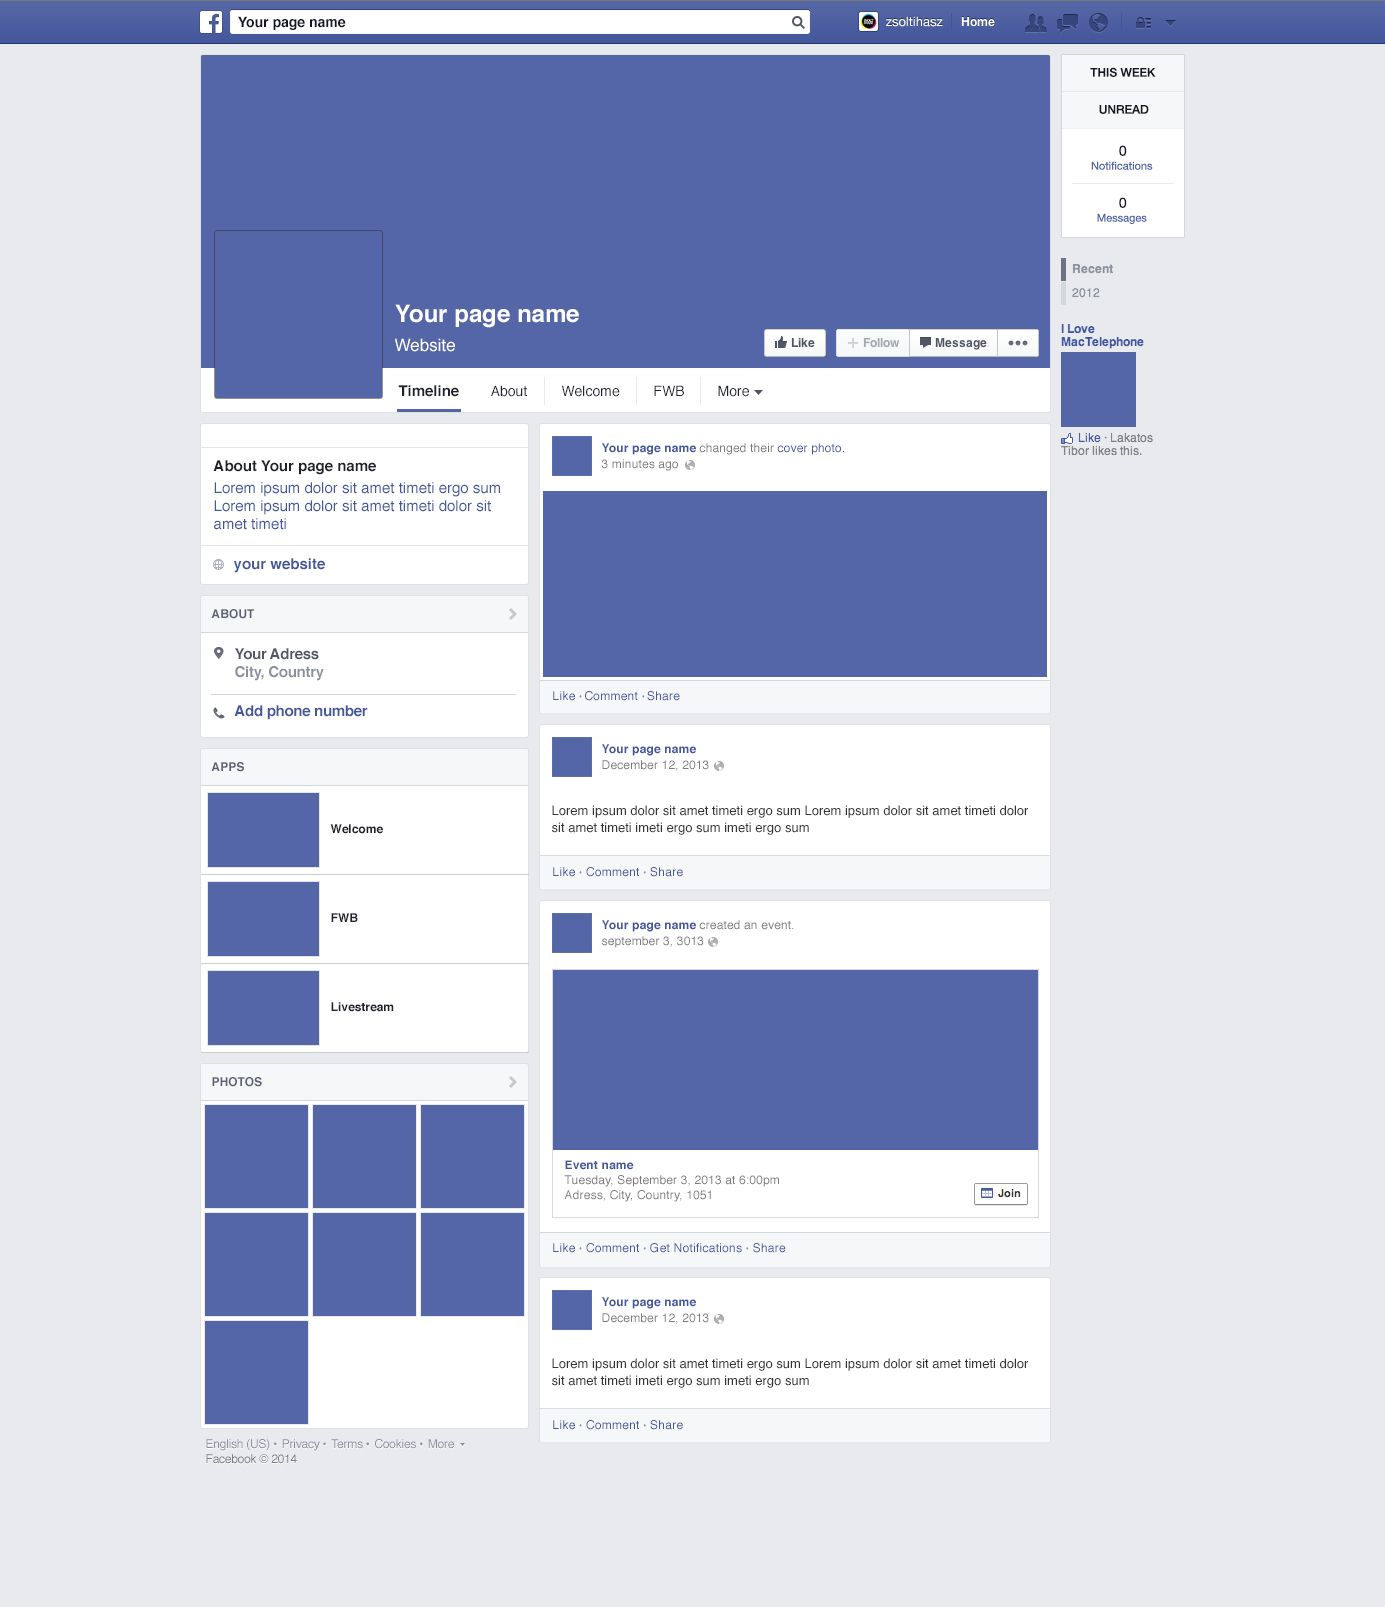 how to see what pages someone likes on facebook